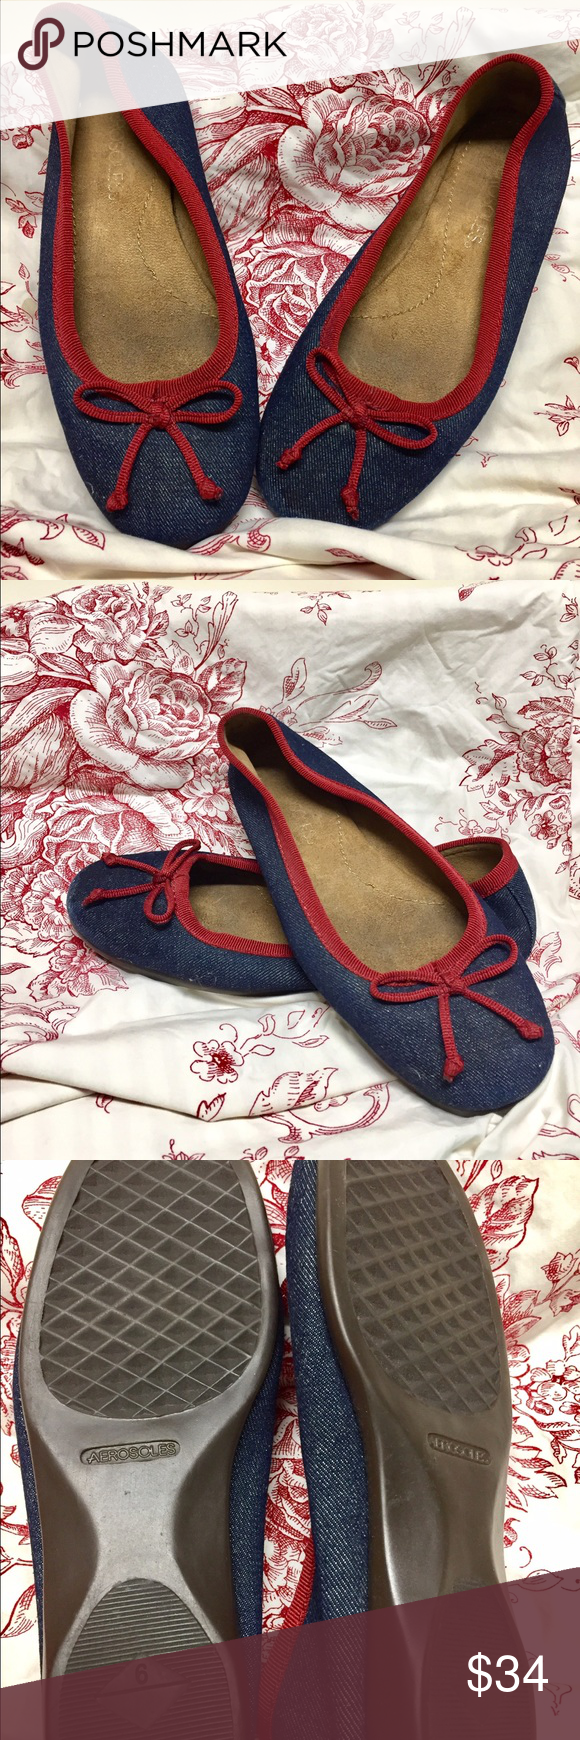 Aerosols Fun Flats 🐰🐰 So fun and comfy! These look great with everything! 🌸🌸 Light wear as bottoms indicate. AEROSOLES Shoes Flats & Loafers